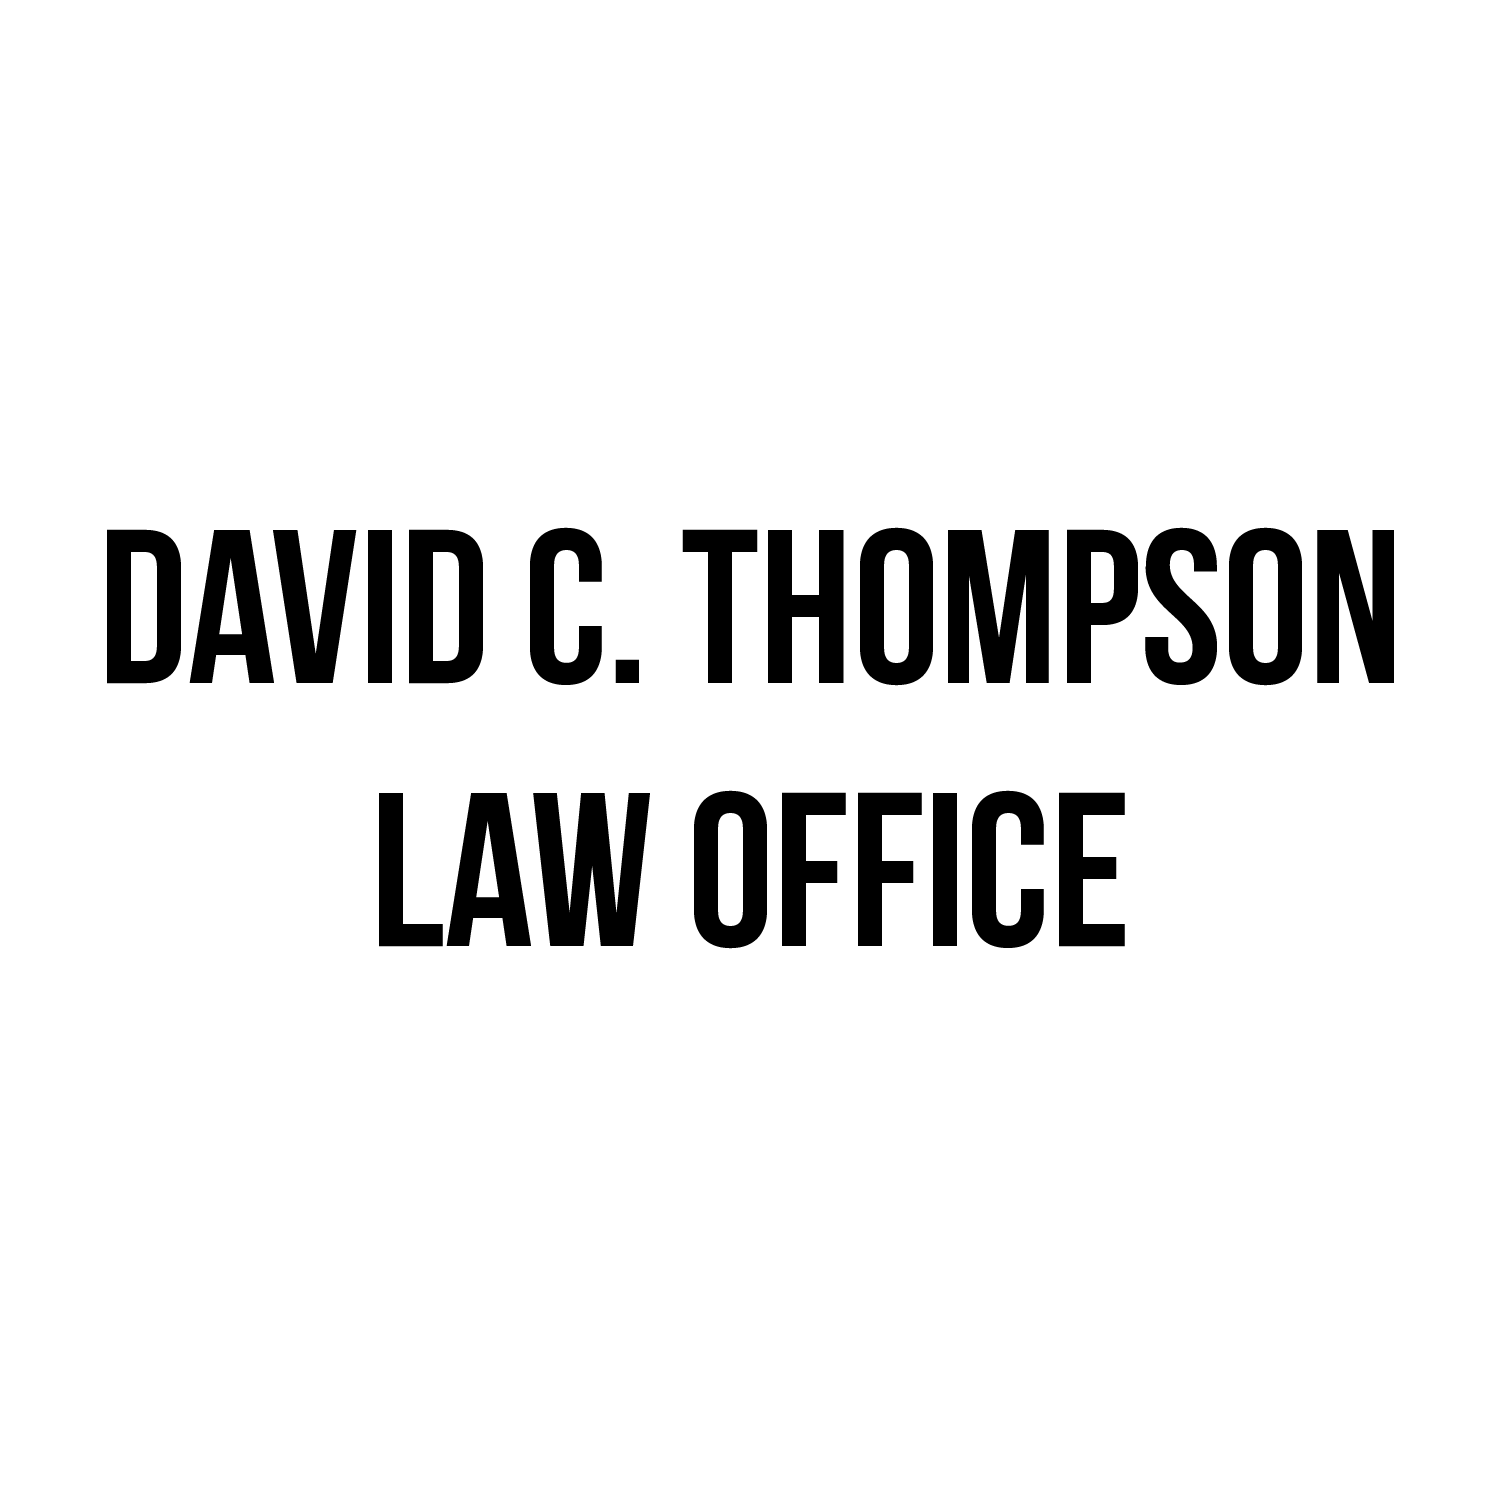 David C. Thompson Law Office  321 Kittson Ave Grand Forks, ND 701-775-7012